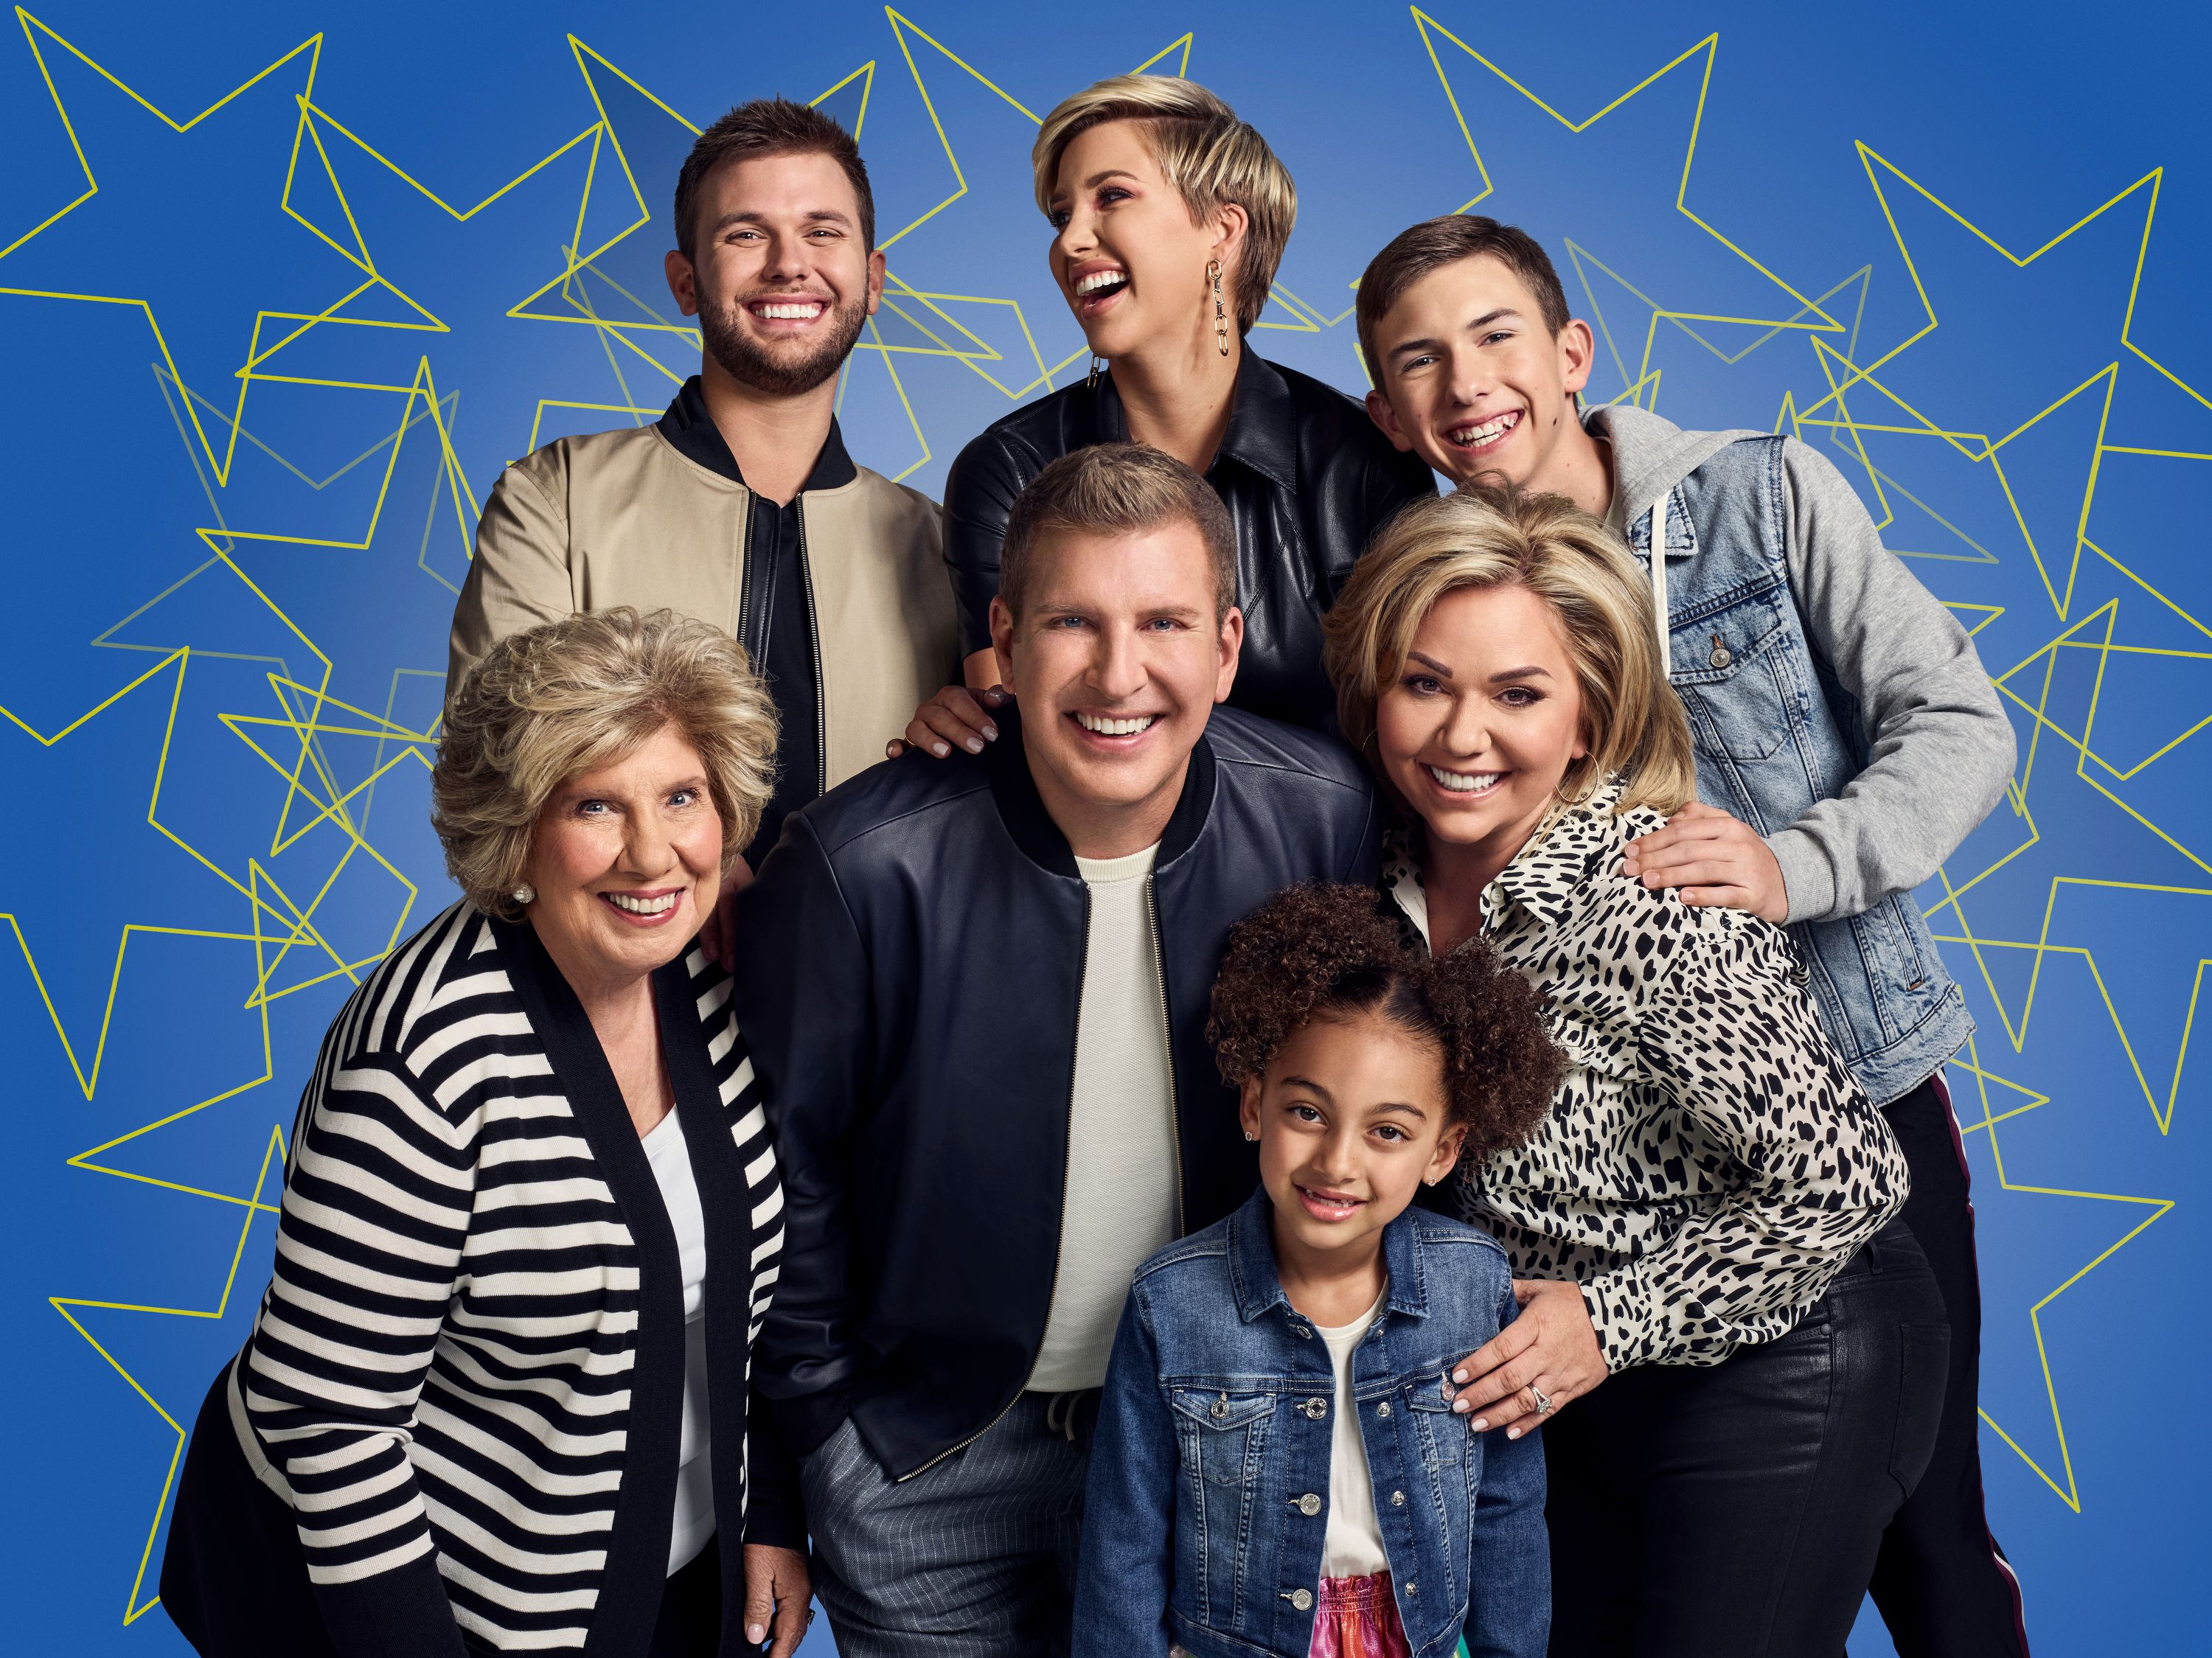 """Faye, Chase, Todd, Savannah, Chloe, Julie, and Grayson Chrisley in a season 8 """"Chrisley Knows Best"""" promo image   Photo: Getty Images"""